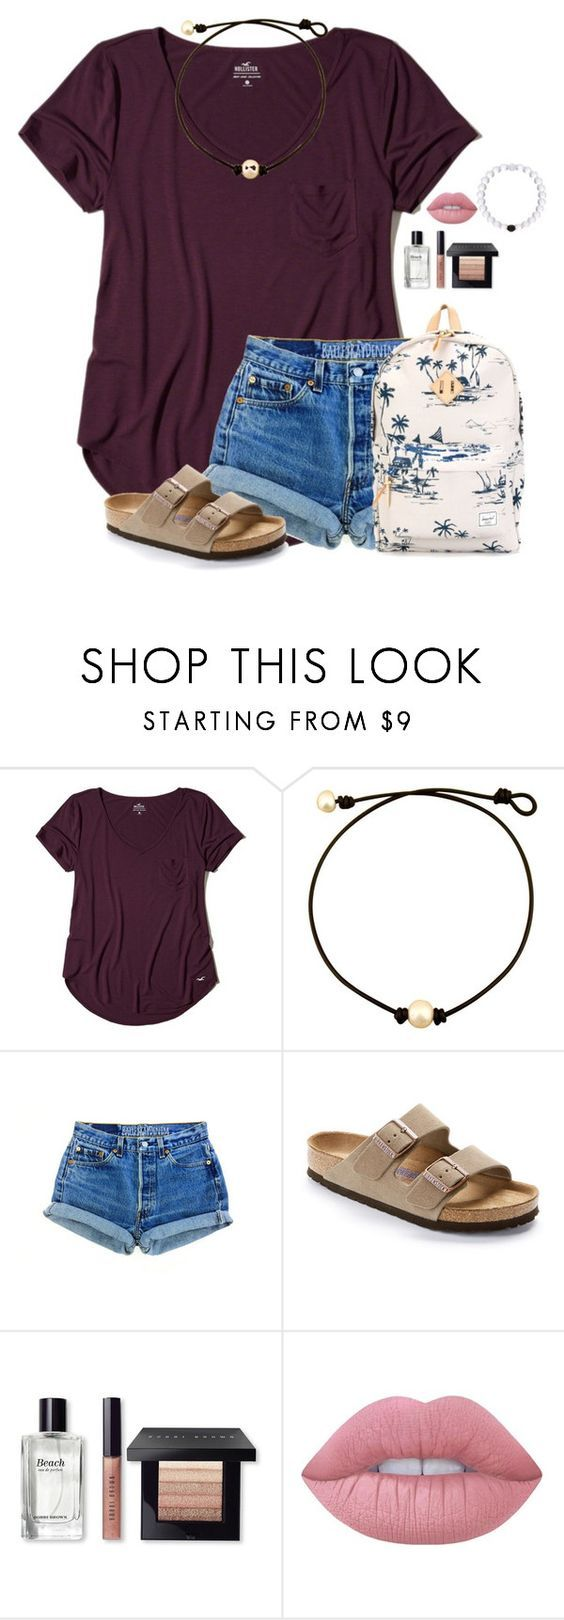 """""""Monday at school"""" by victoriaann34 on Polyvore featuring Hollister Co., Birkenstock, Bobbi Brown Cosmetics, Lime Crime and Herschel Supply Co."""